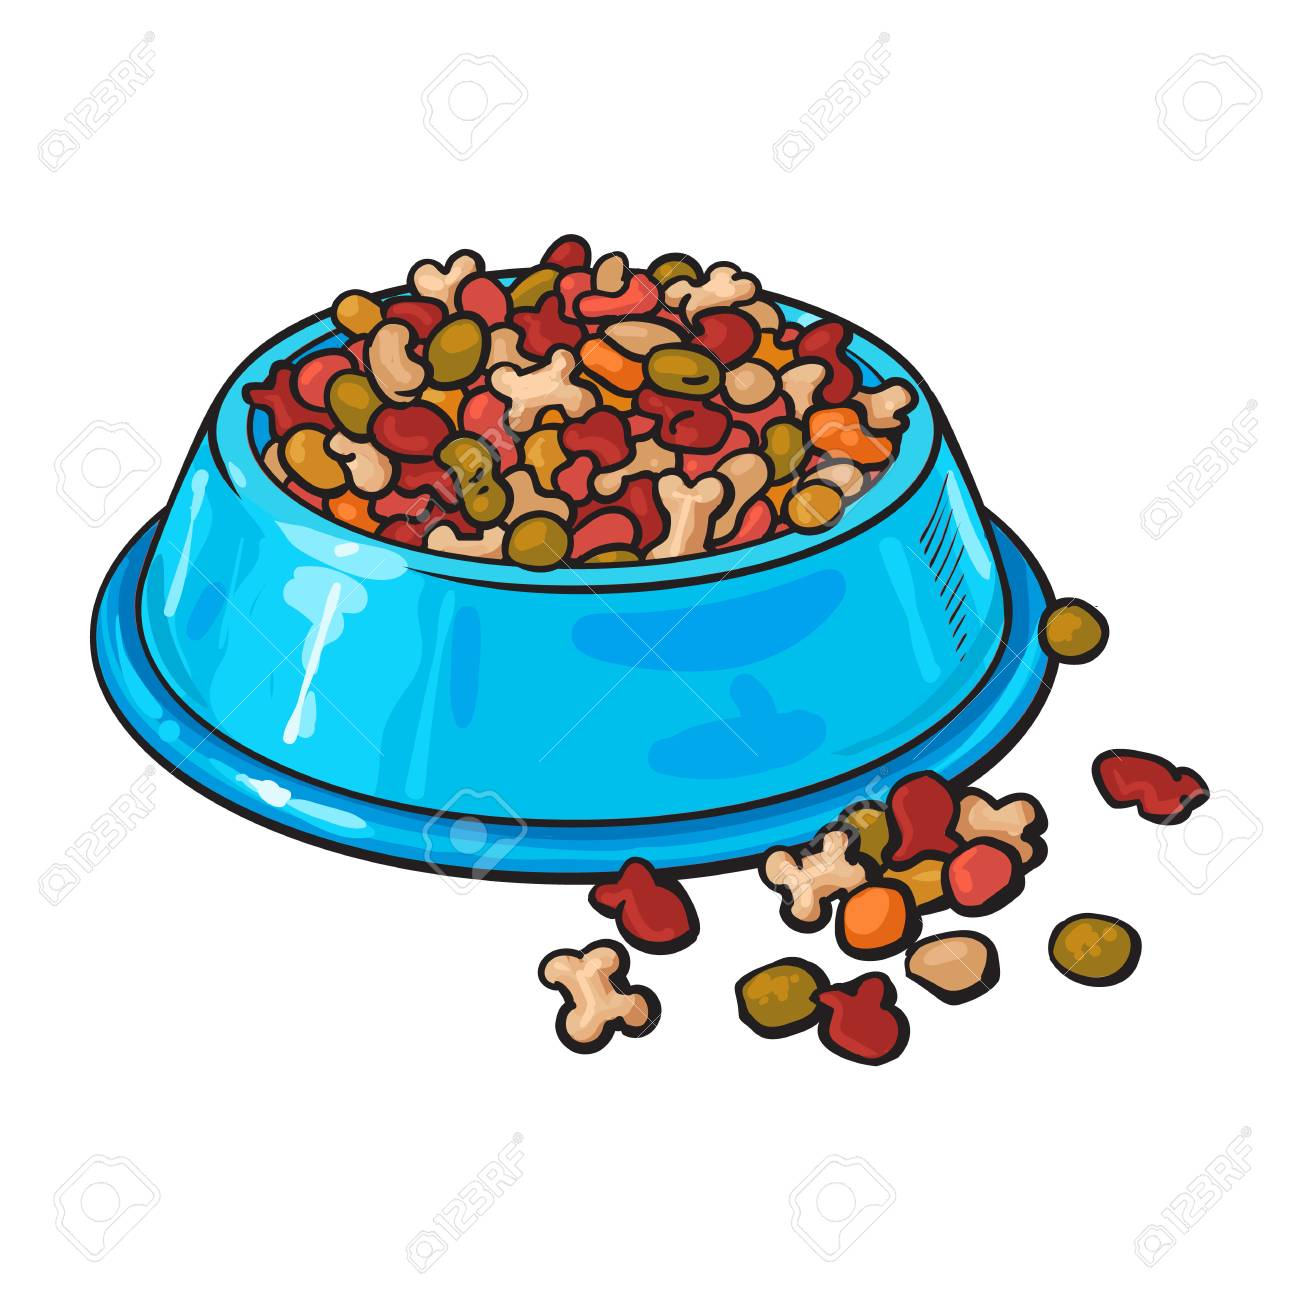 Plastic bowl filled with dry pelleted pet, cat, dog food.